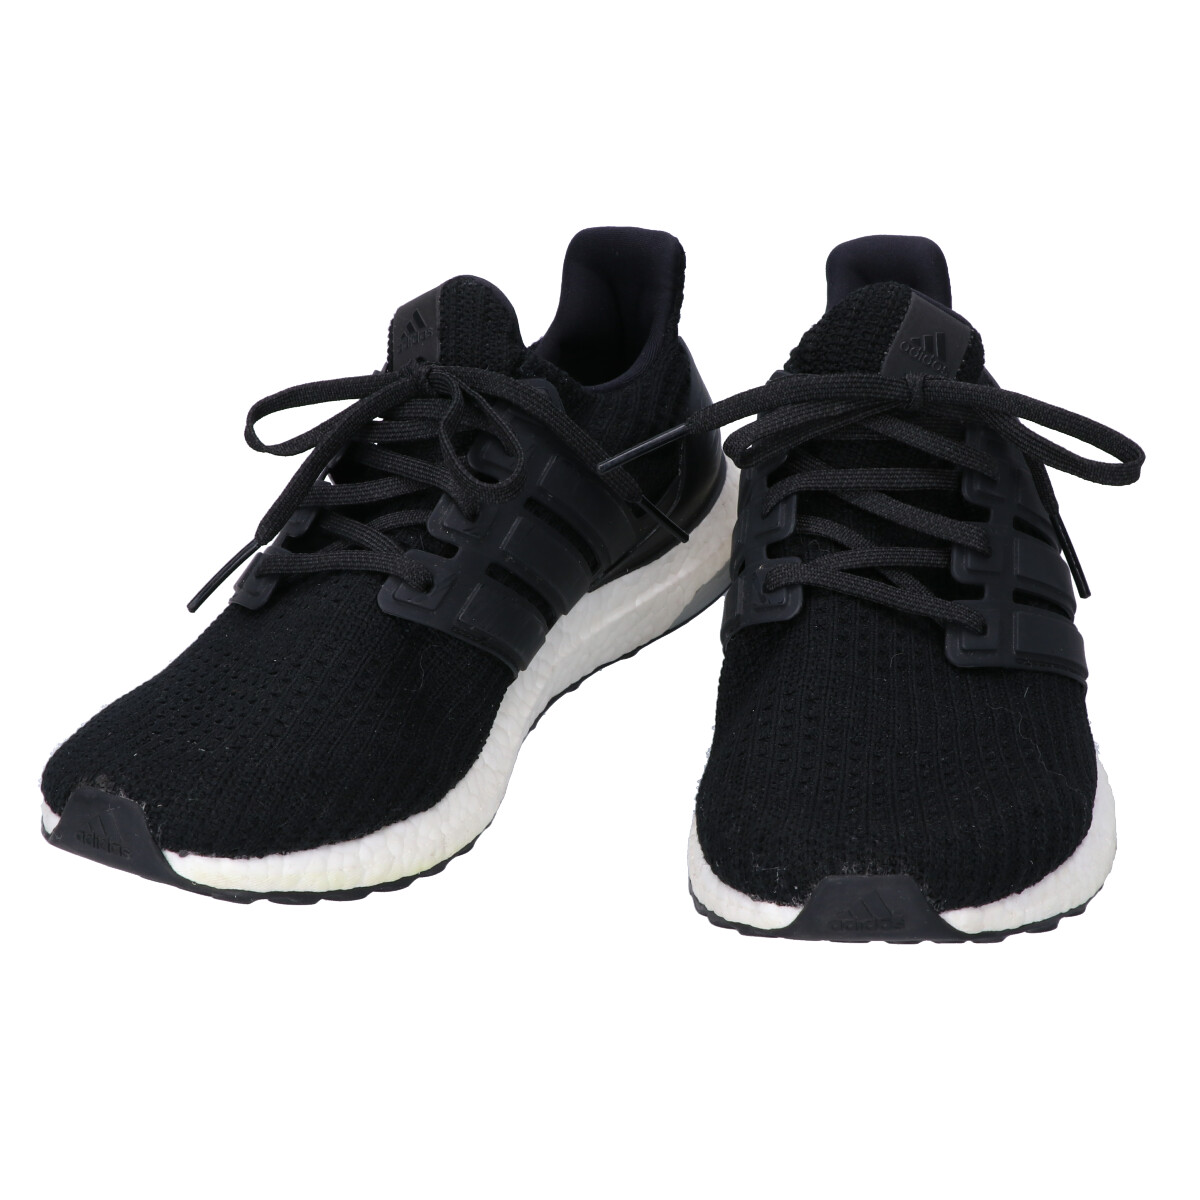 BB6166 ULTRABOOST ultra boost running sneakers shoes 27.5 core black men made in adidas Adidas 18 years